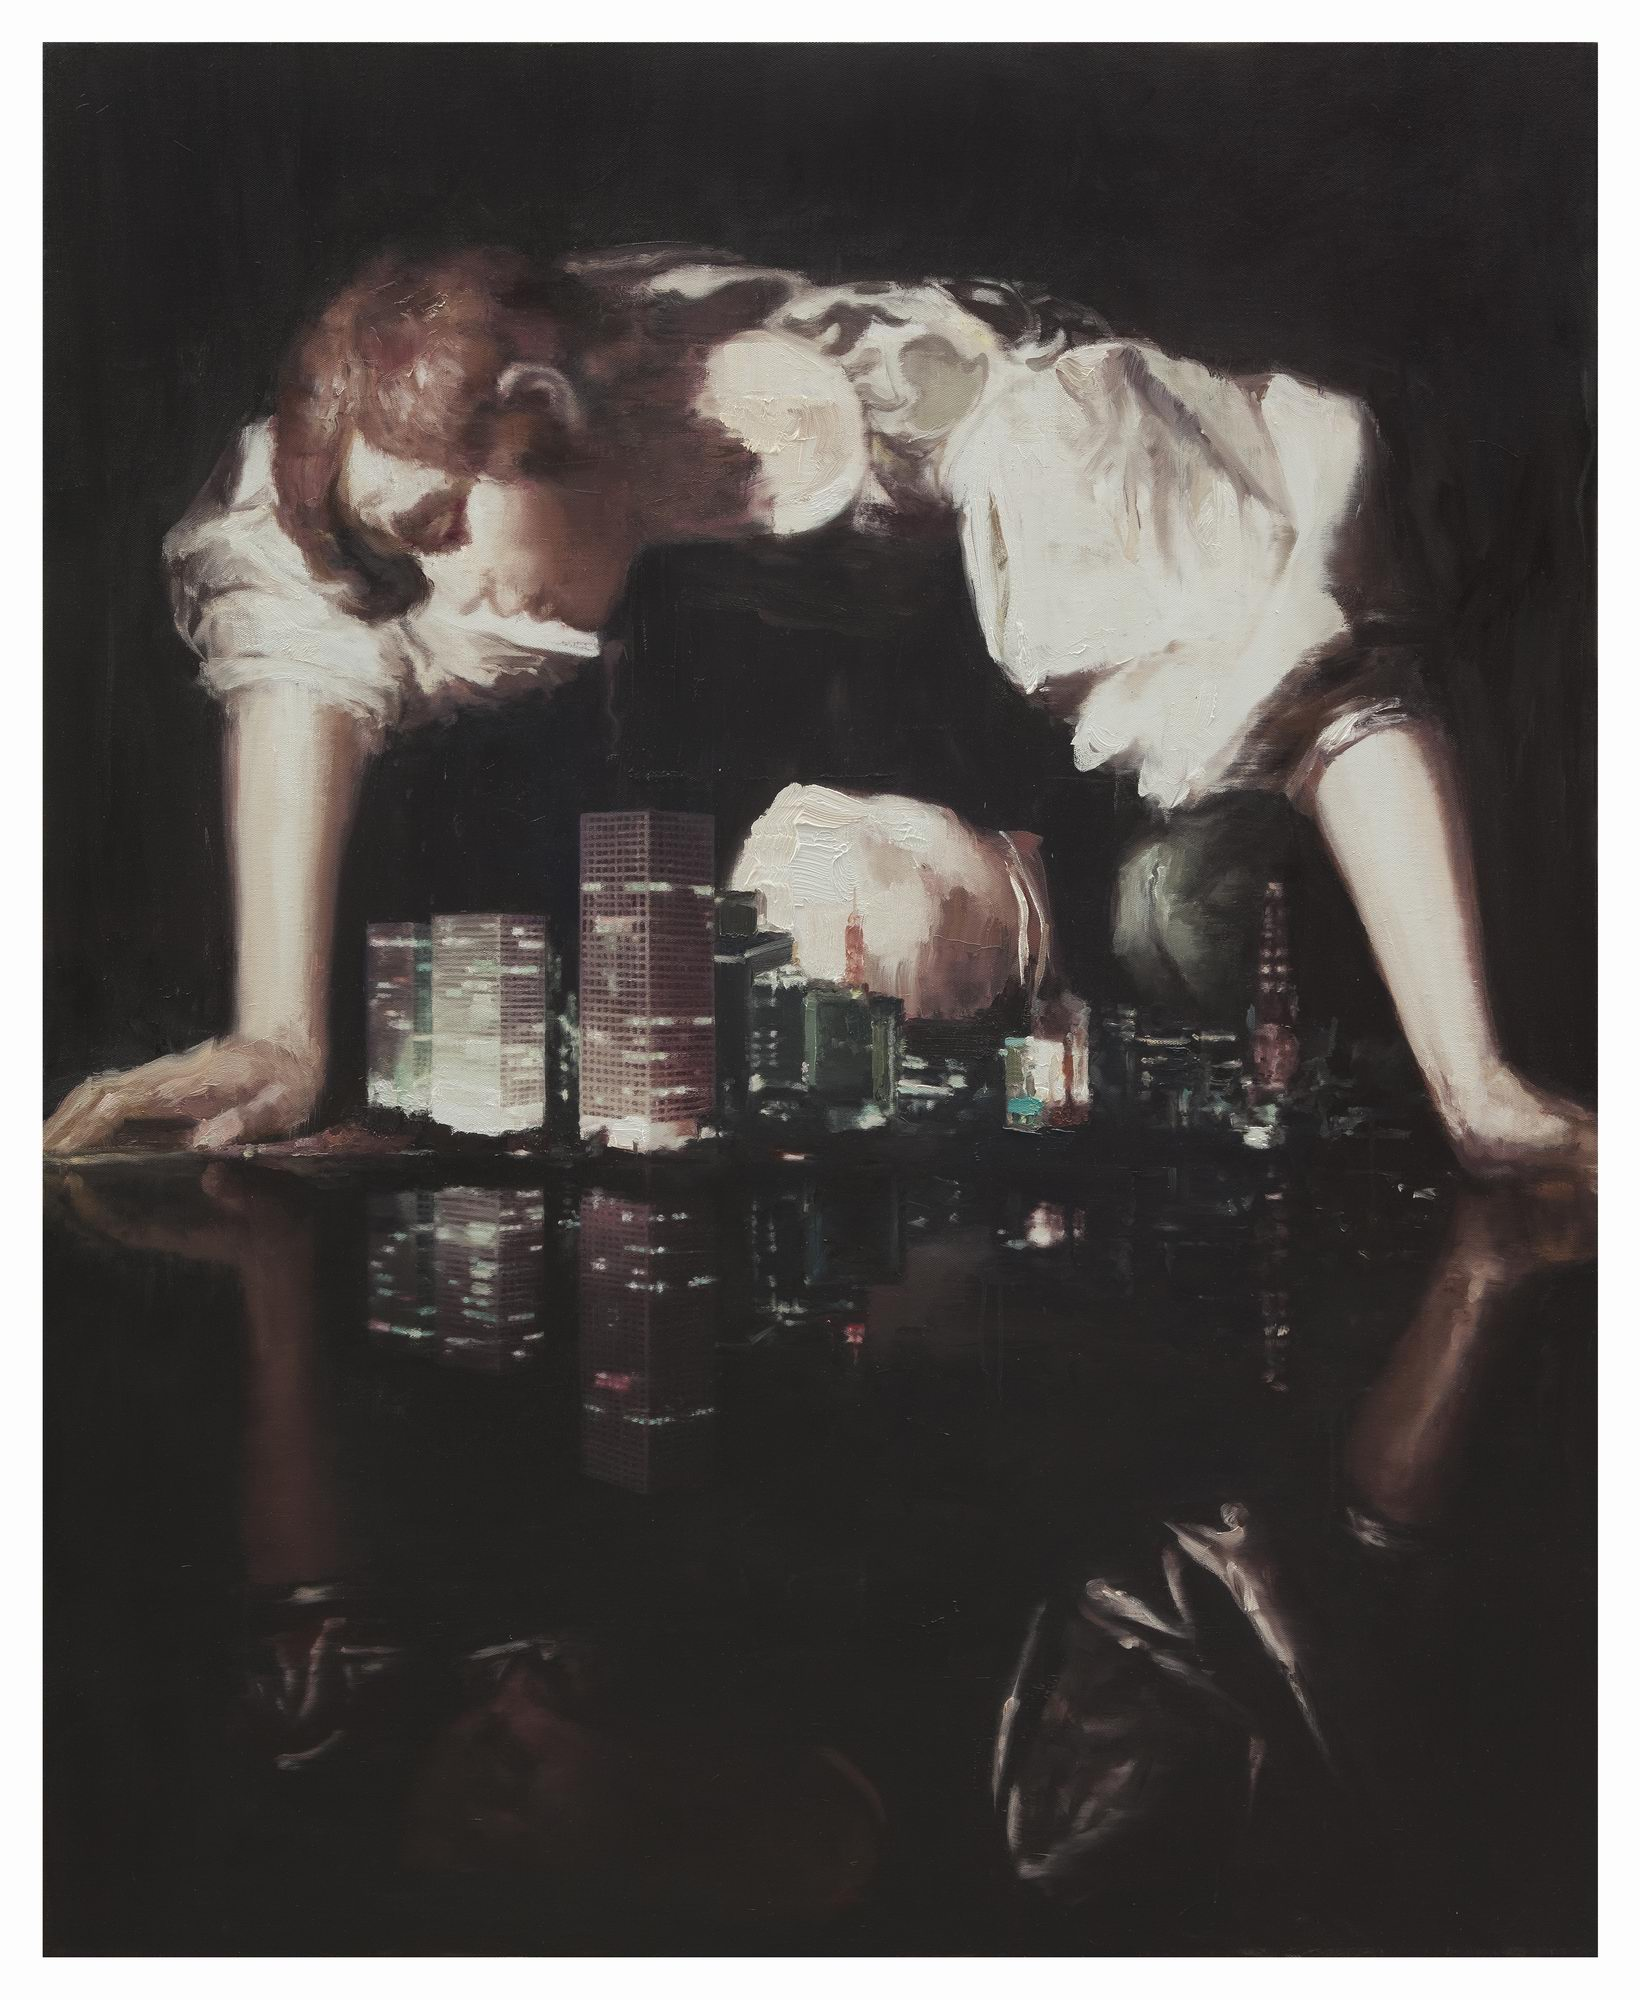 Li Qing 李青, Narcissus' City 那喀索斯之城, 2011, Oil on canvas 布面油画, 160 x 130 cm